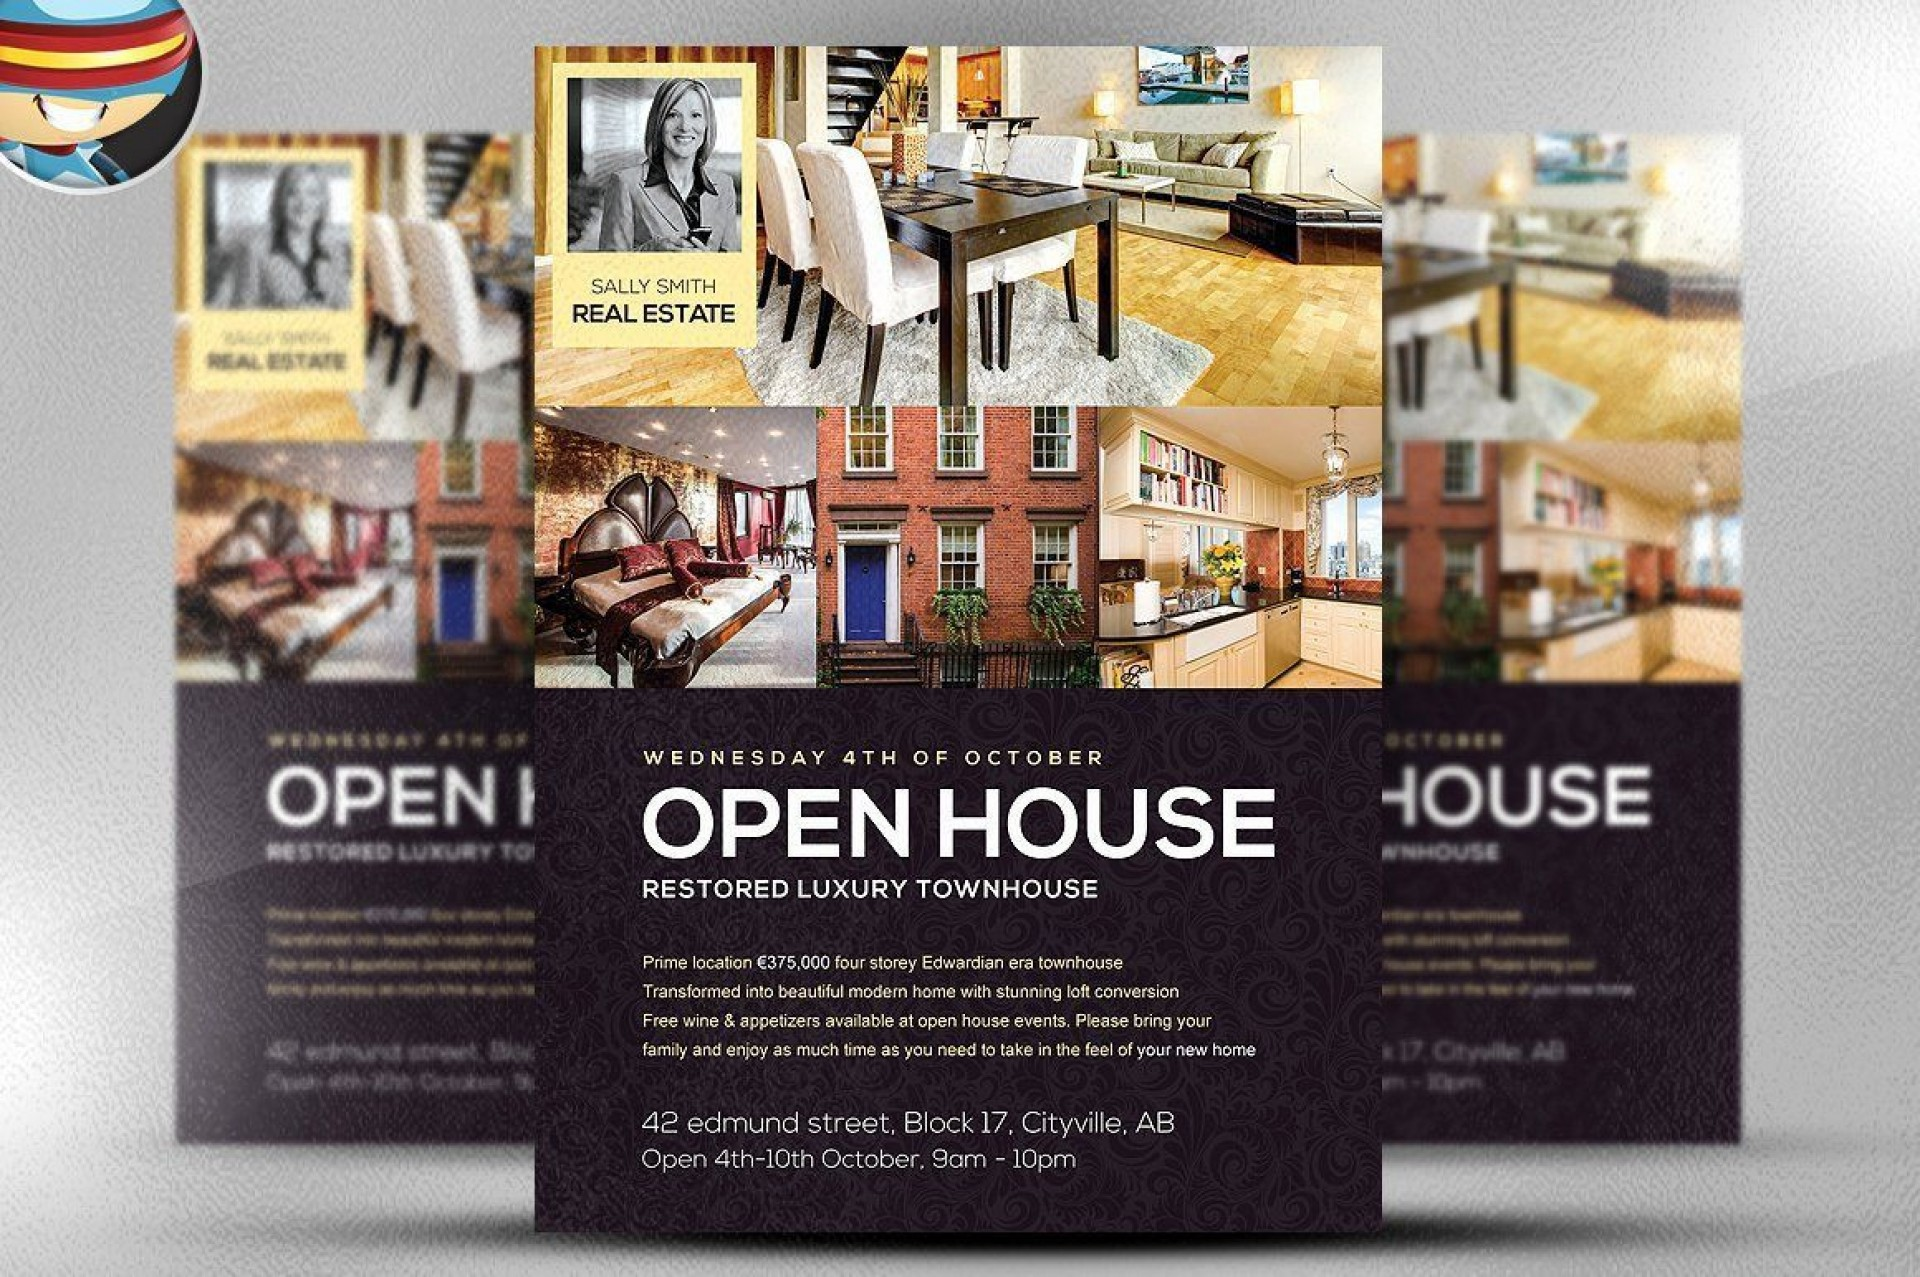 000 Magnificent Open House Flyer Template Inspiration  Templates Free School Microsoft1920